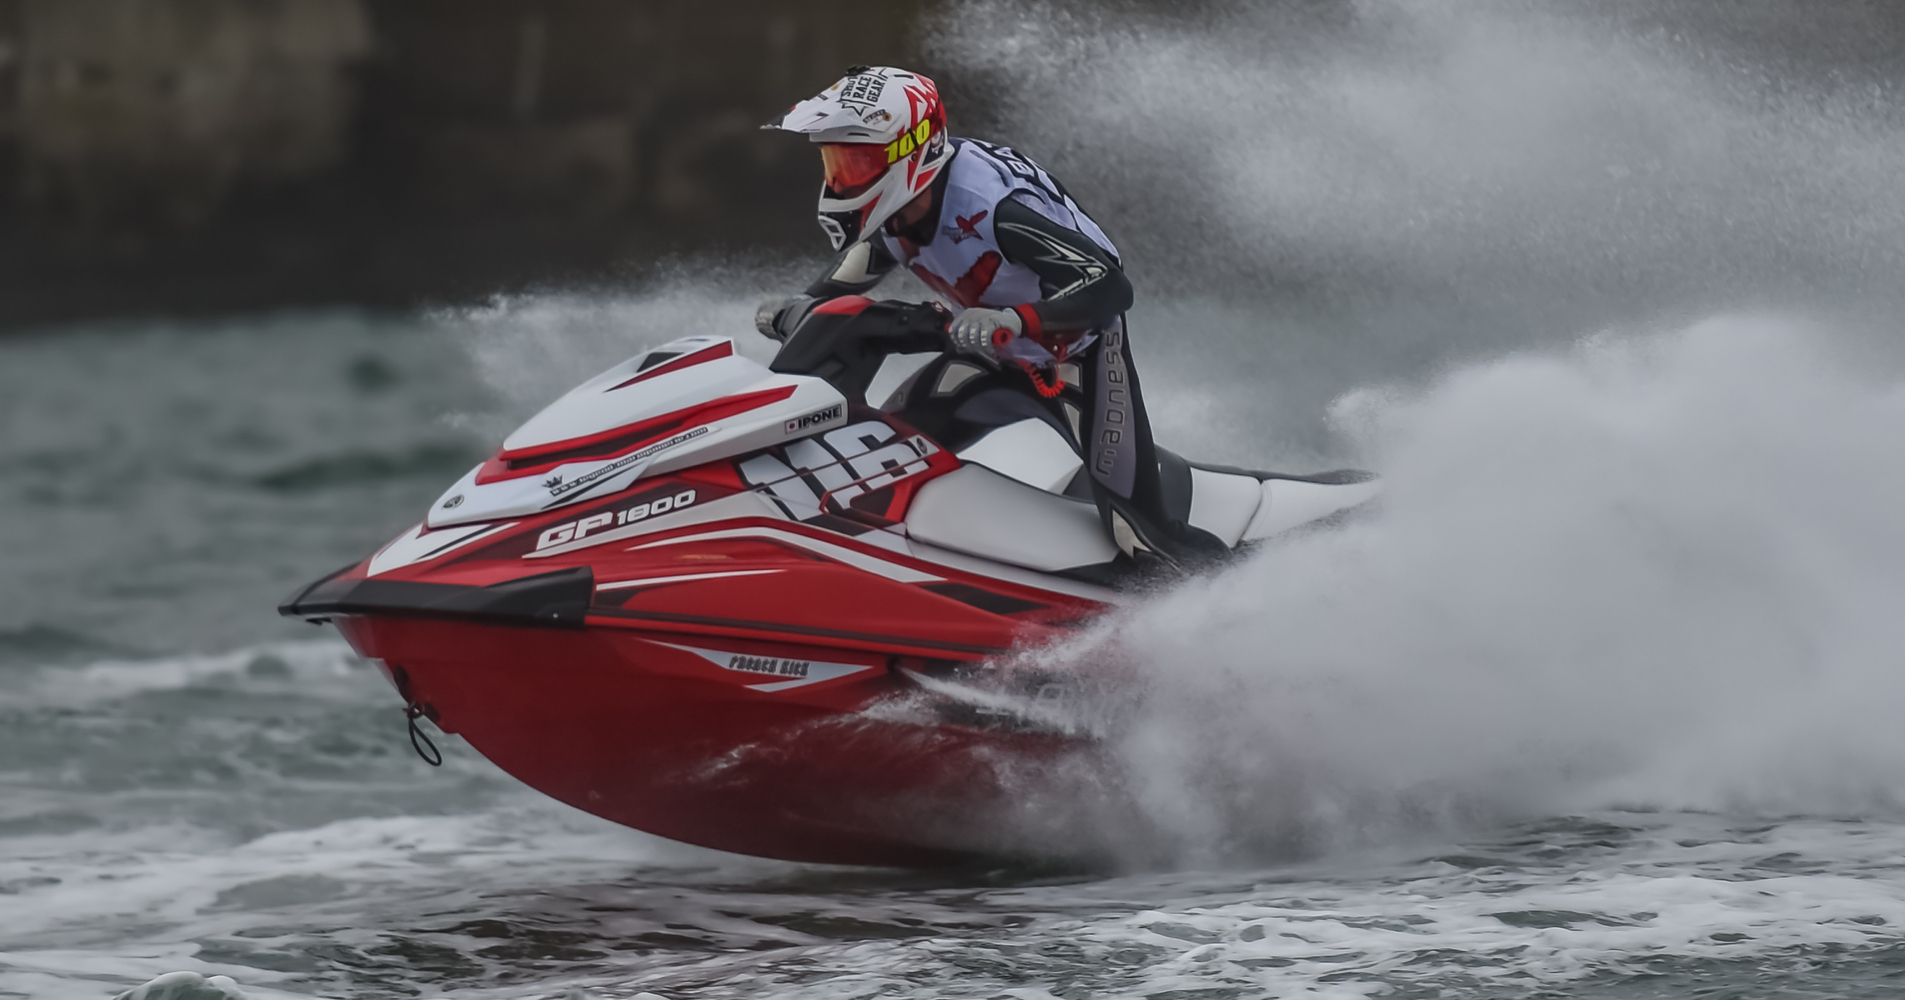 Thomas Batisse made it two round victories from two in the 300 Euro championship